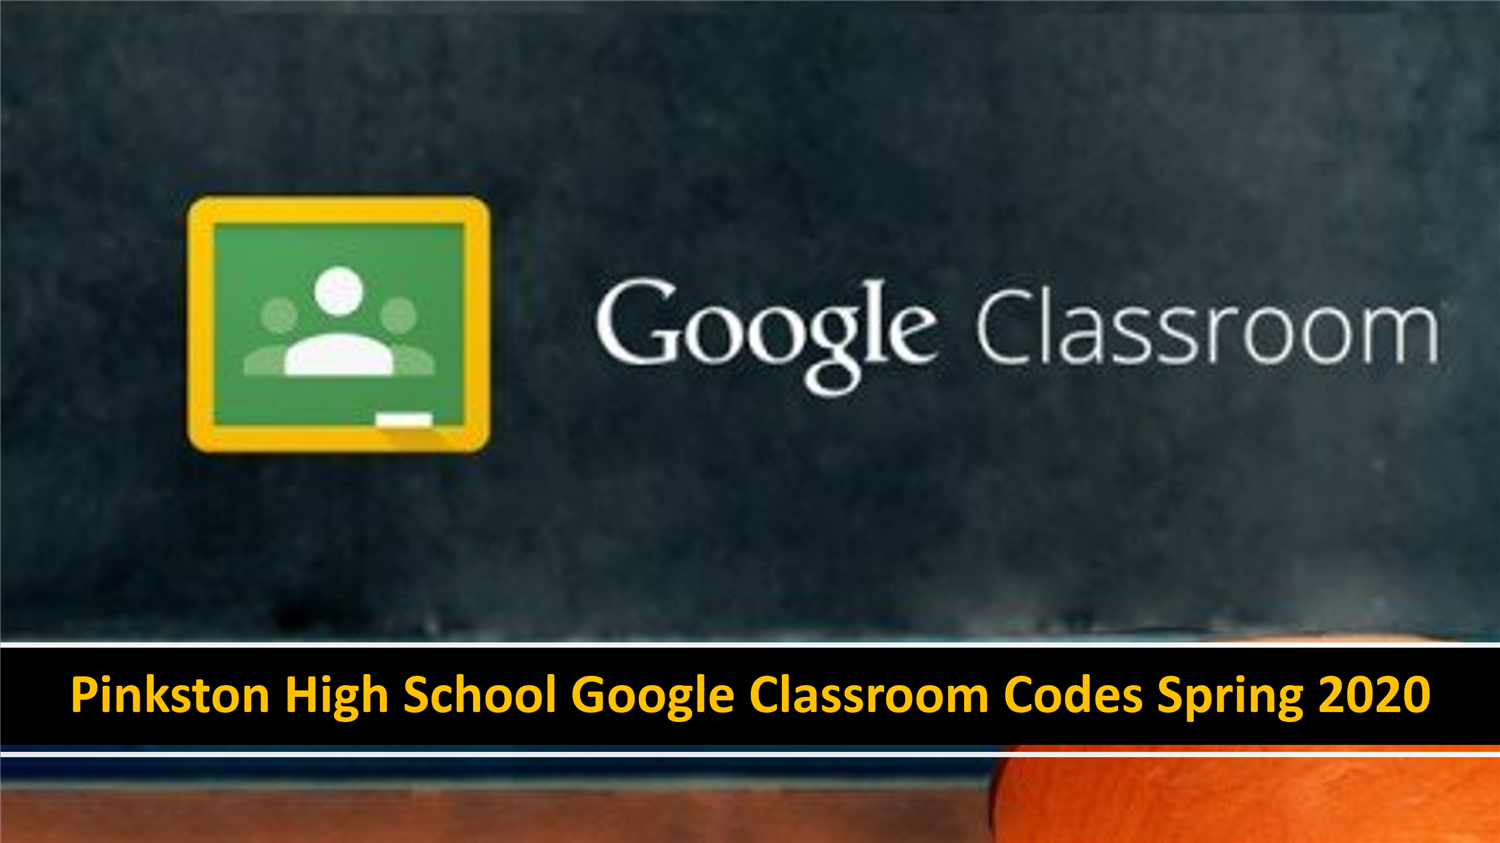 Pinkston High School Teacher Google Classroom Codes Spring 2020